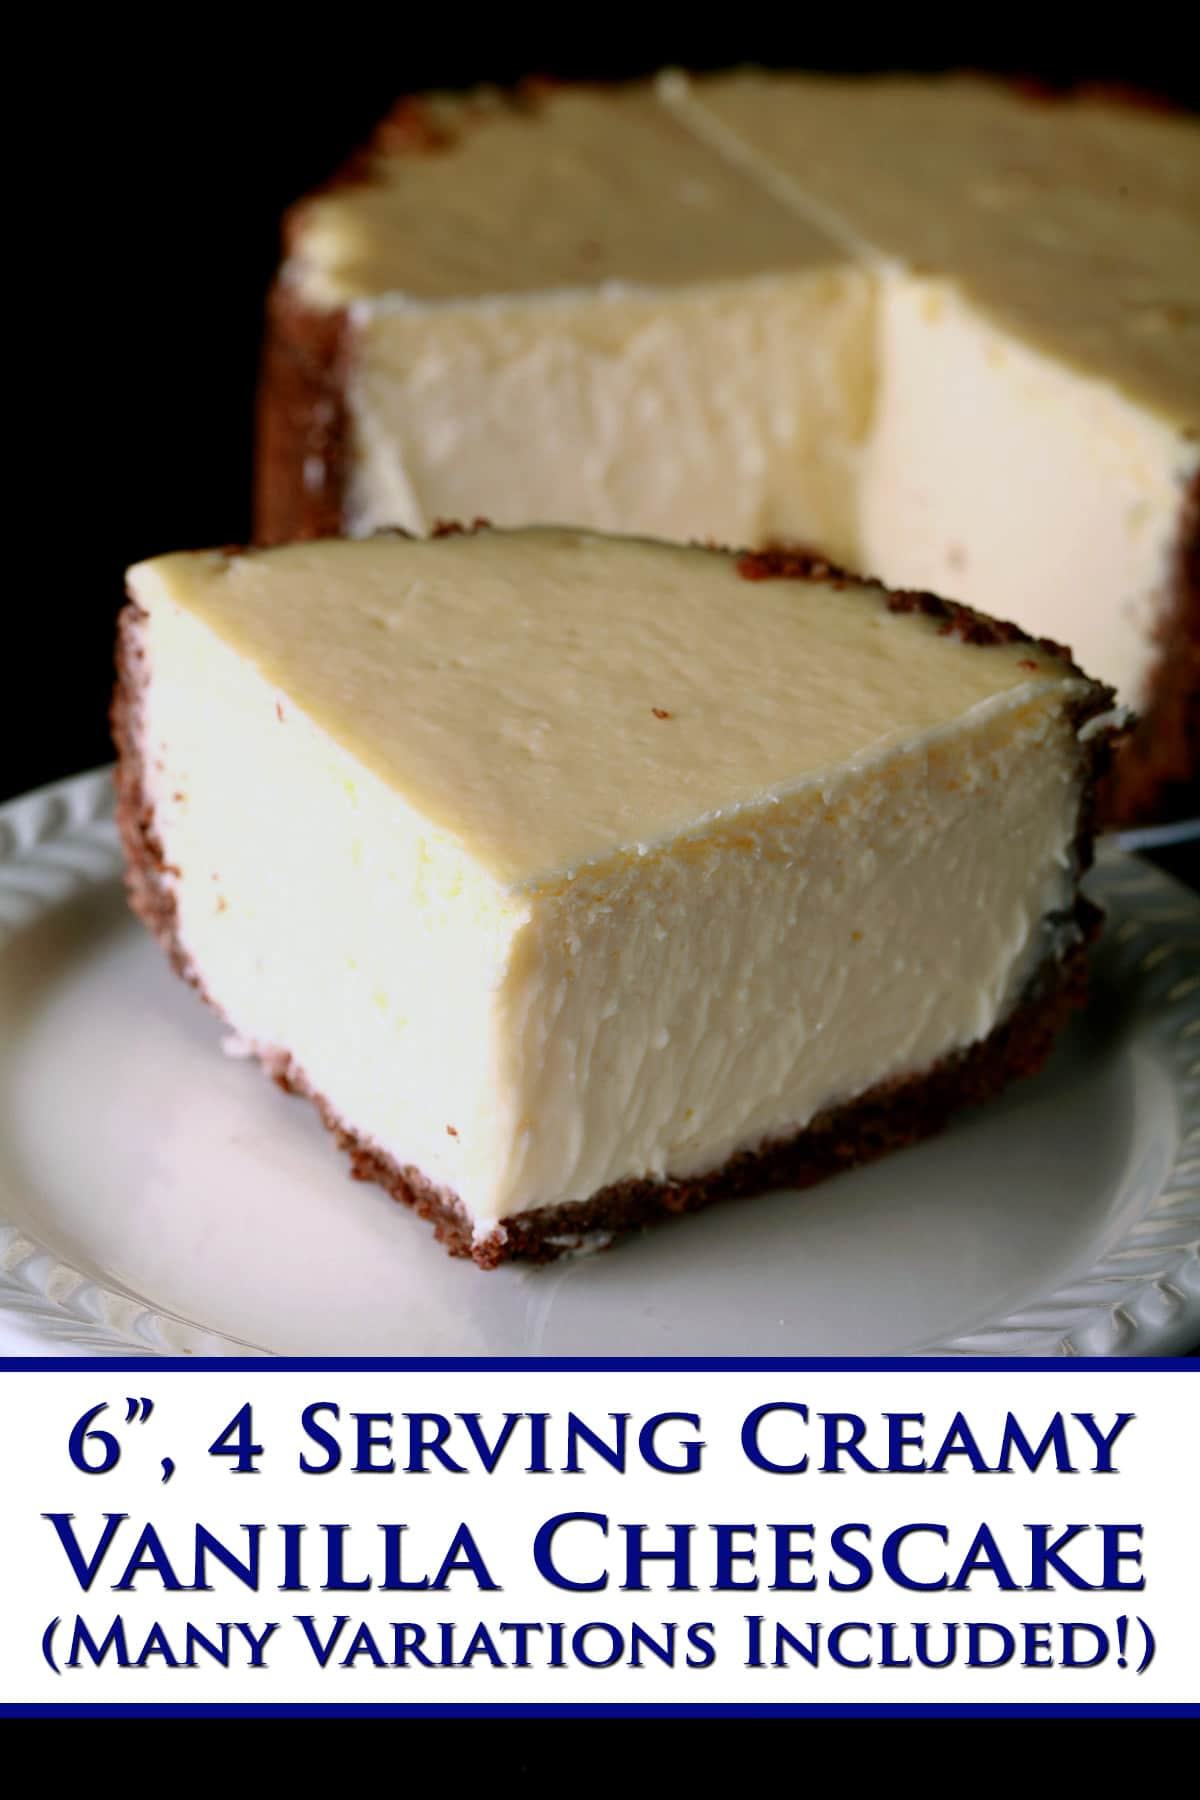 A close up view of a small cheesecake. Blue text says 6 inch, 4 serving creamy vanilla cheesecake, many variations included.